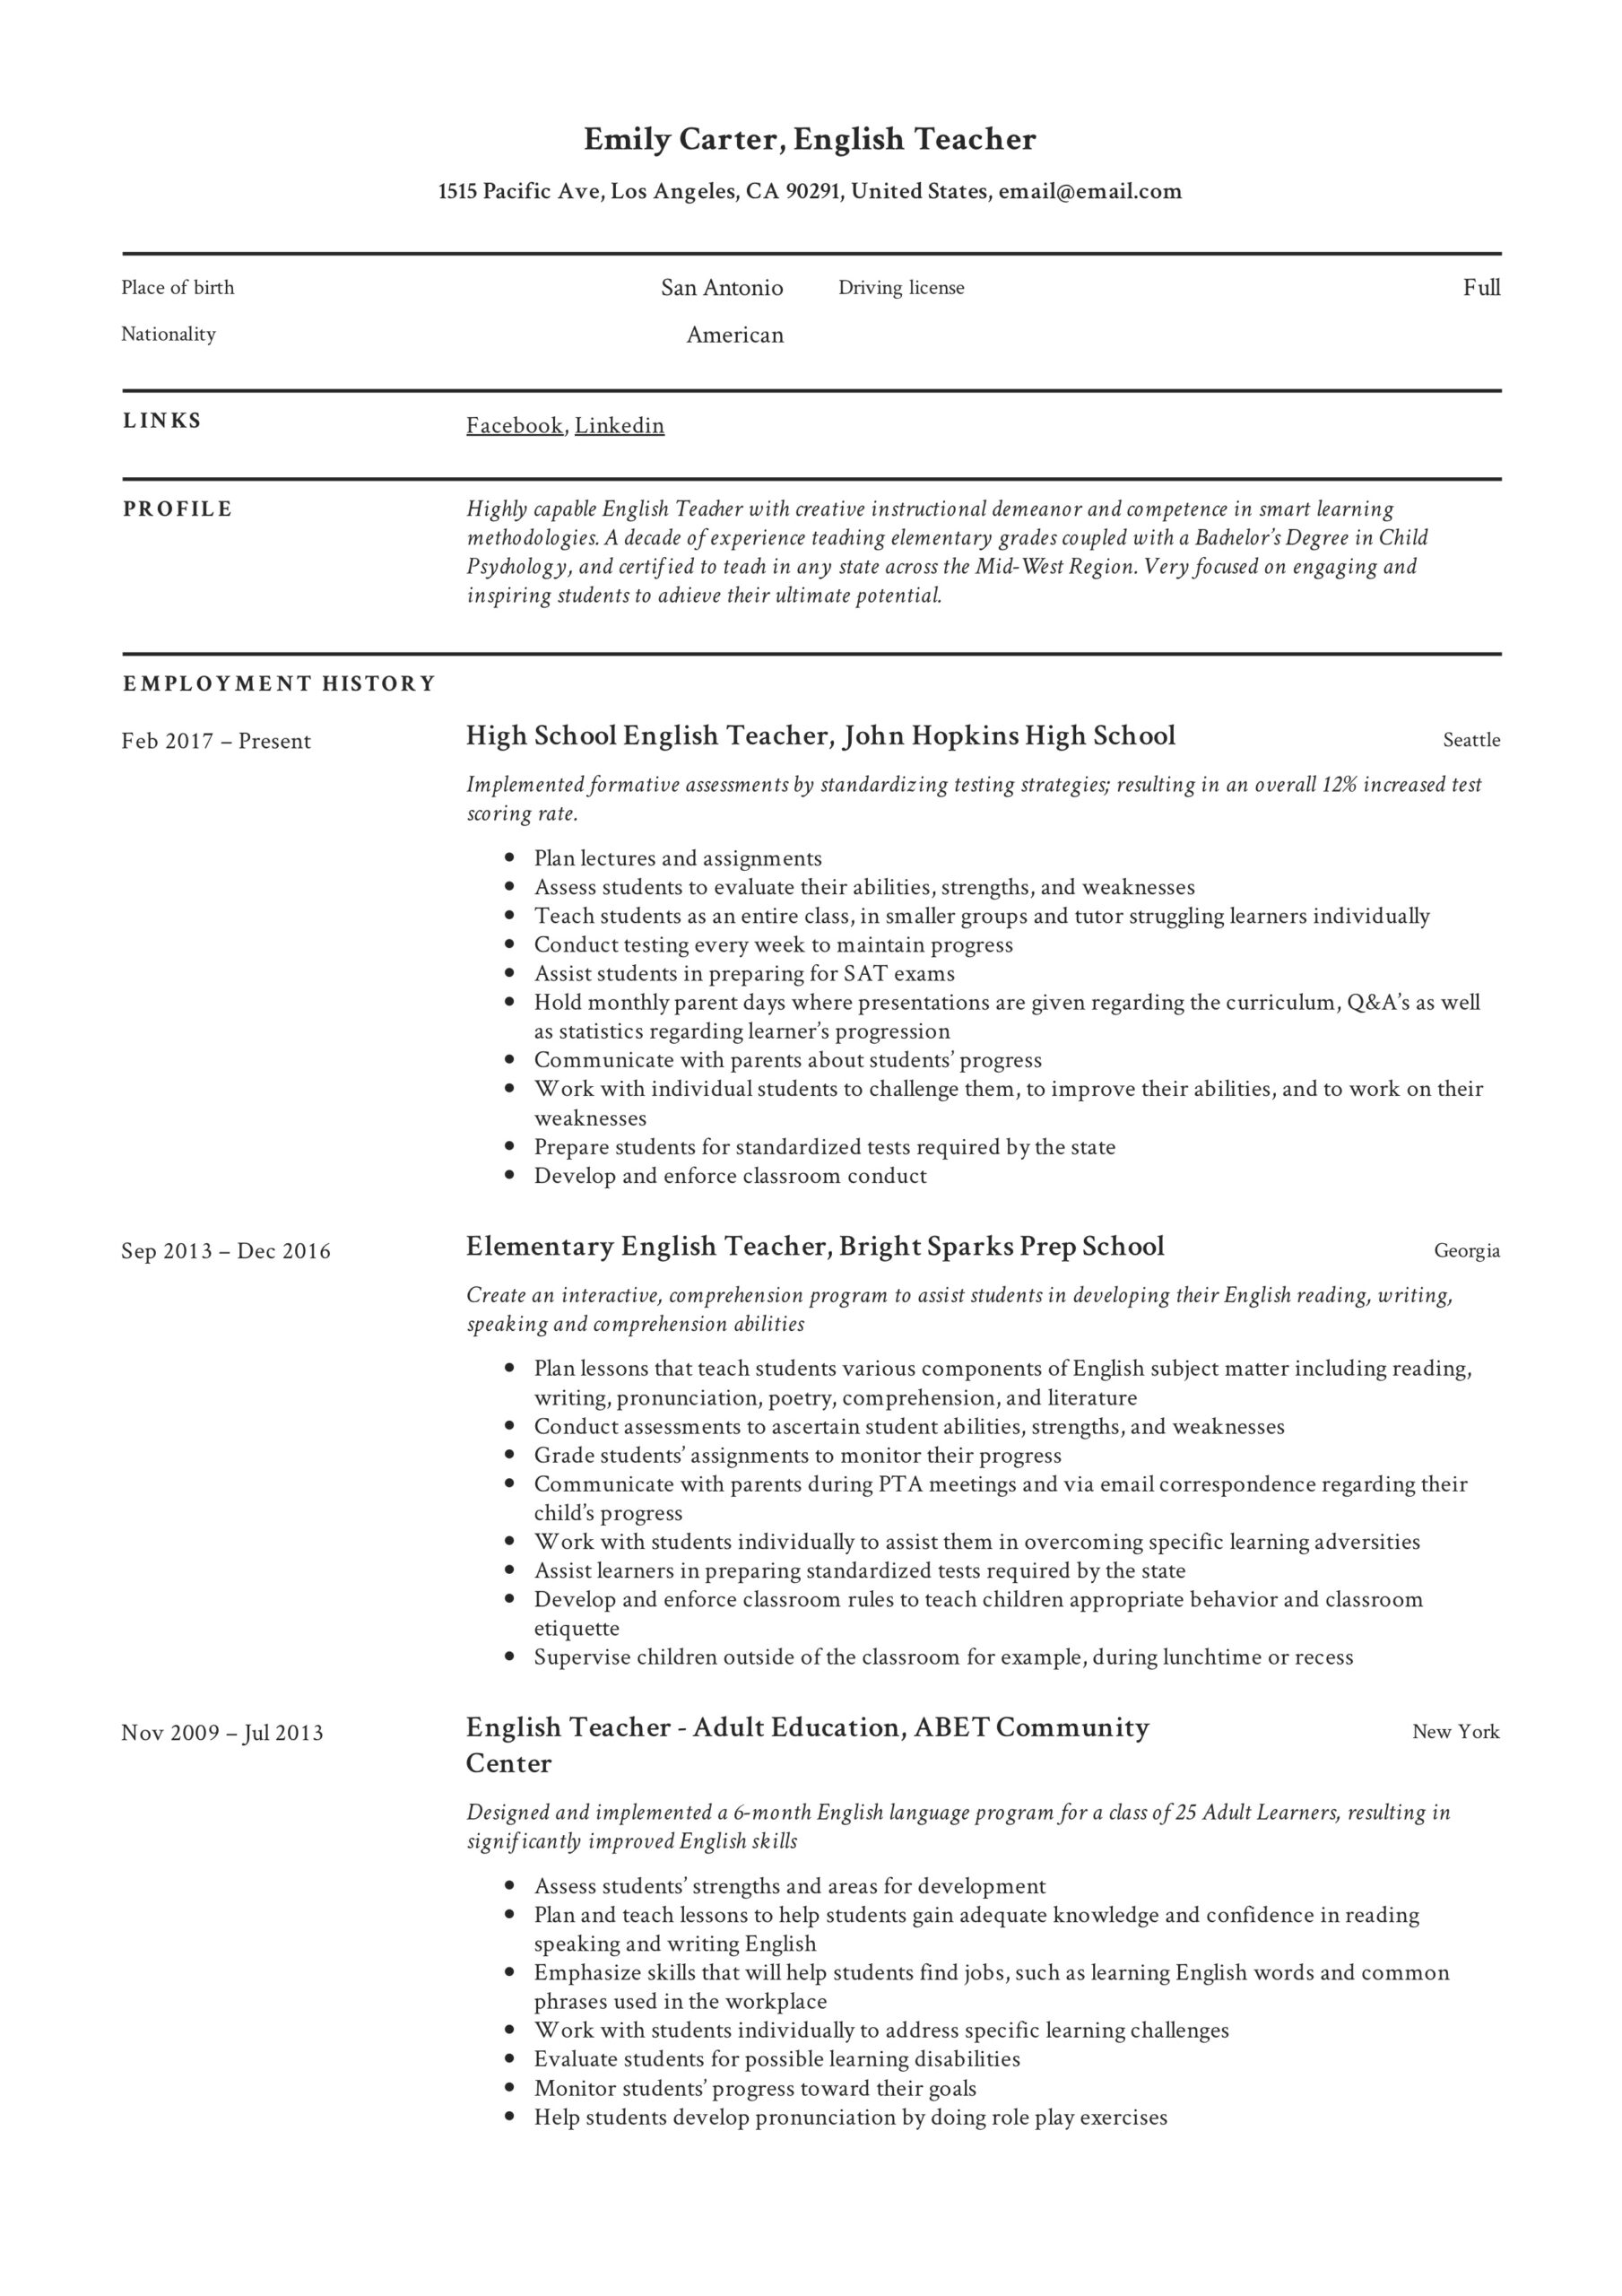 resume templates pdf word free downloads and guides professional examples template Resume Professional Resume Examples 2020